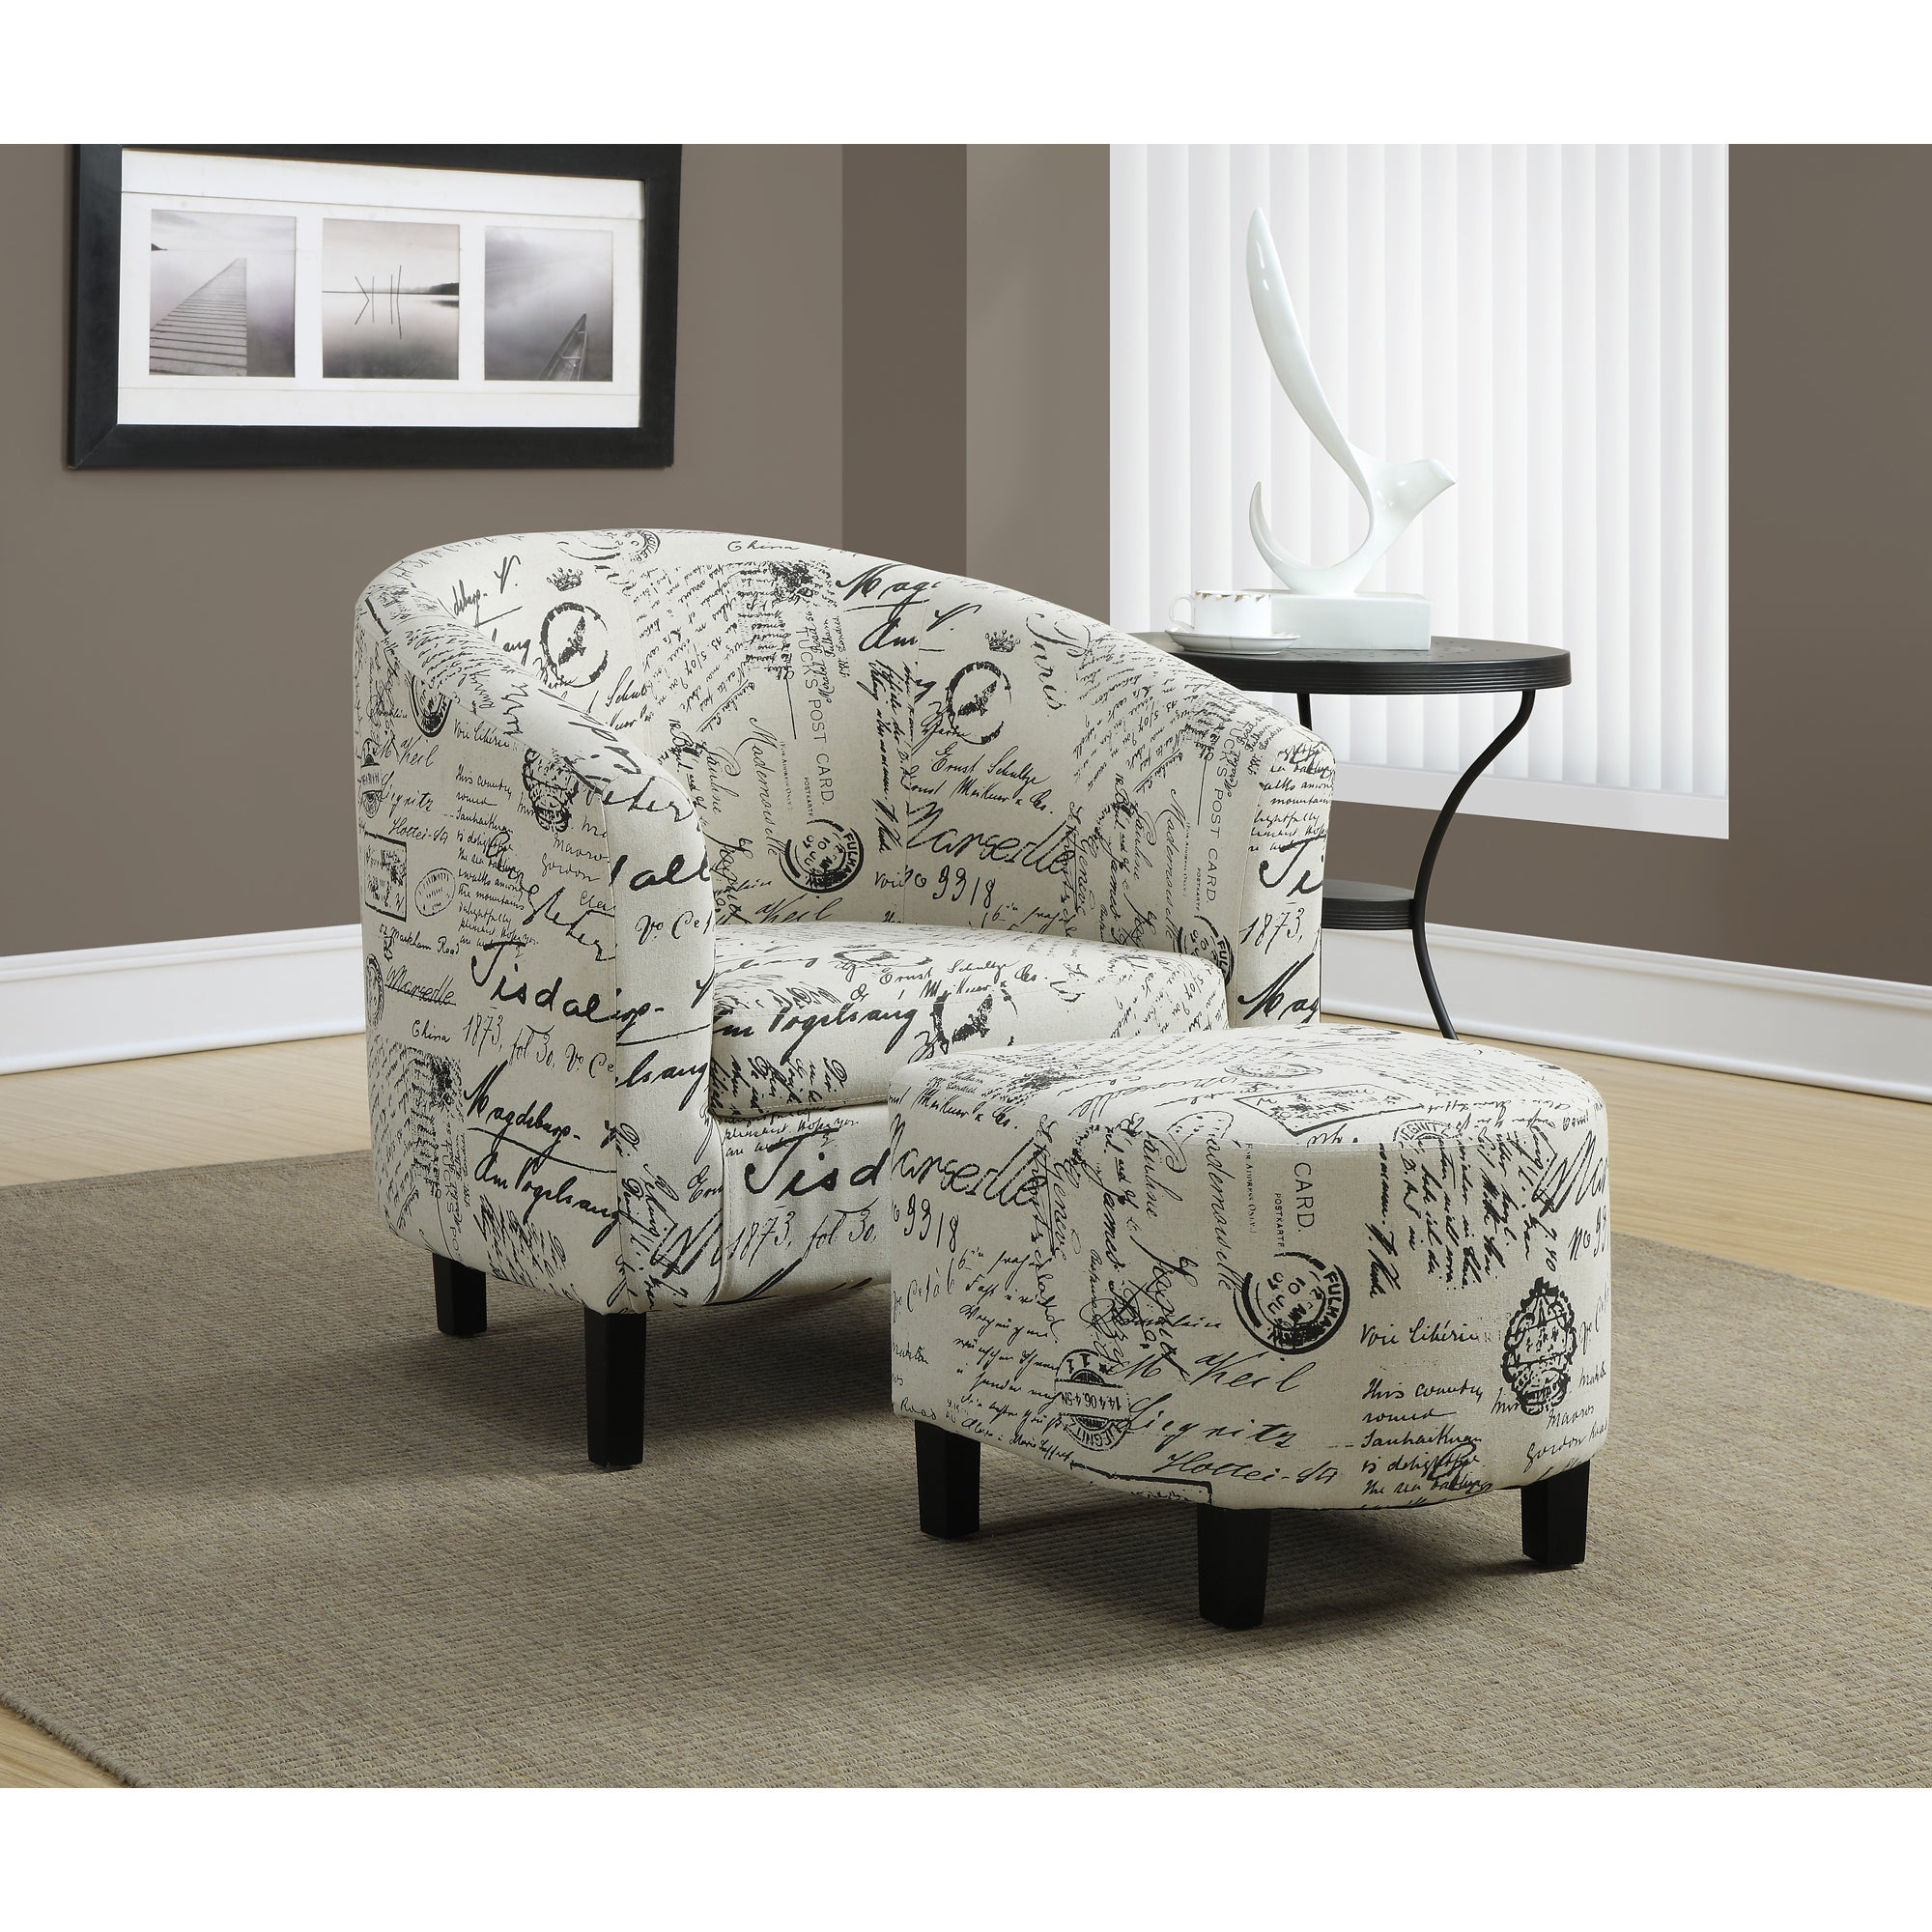 and home tied garden chairs chair product today portfolio hand mira living handy way ottoman free shipping paisley arm ottomans overstock